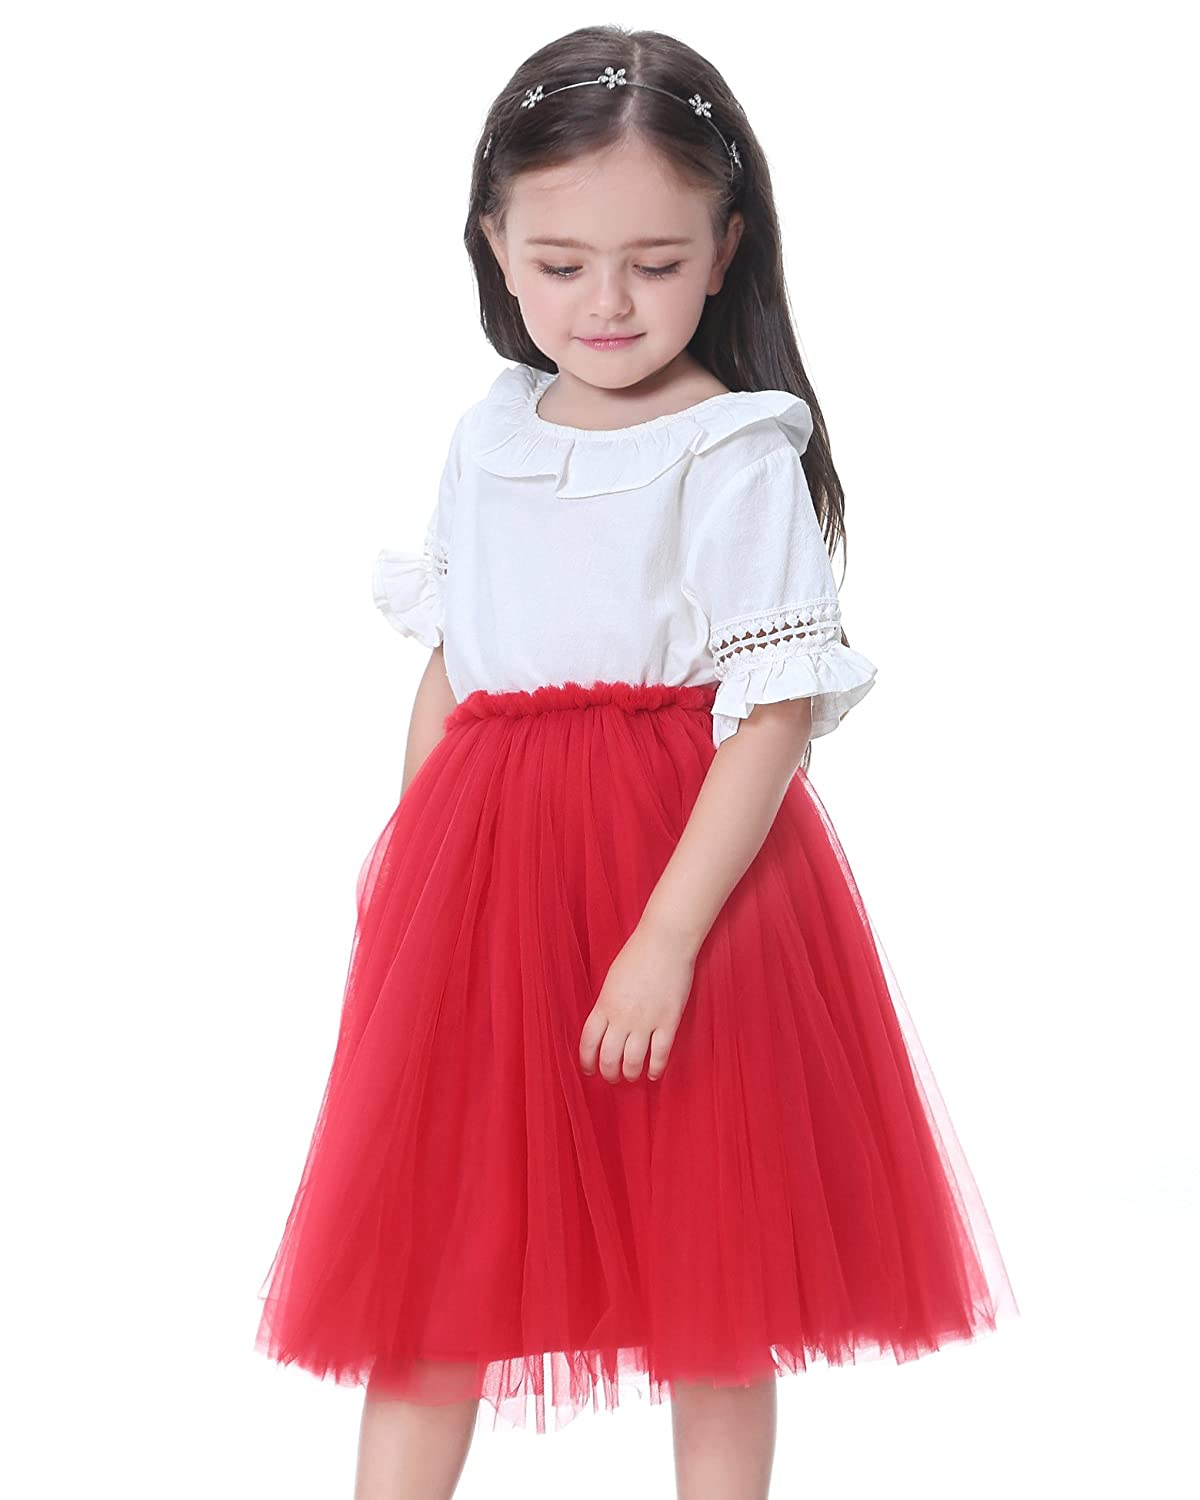 Flofallzique Little Girls Skirts Mid Calf Tulle Dancing Party Skirt for Kids Clothes Feige FLOSK14